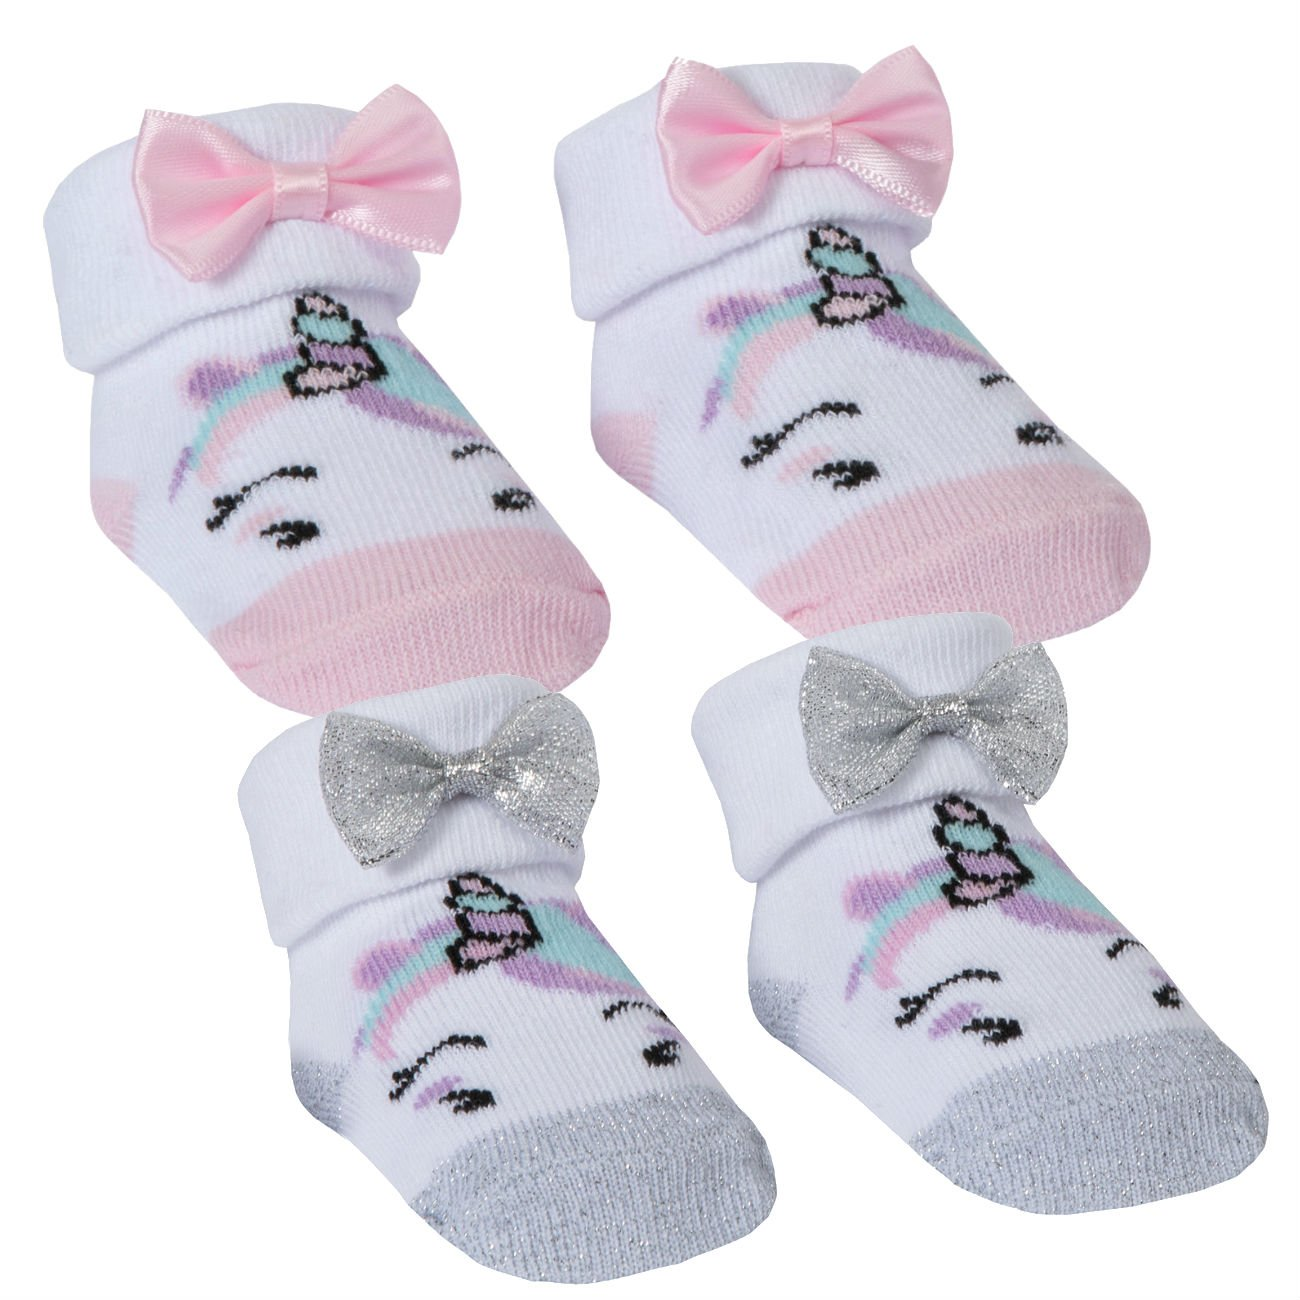 BABYTOWN Newborn Baby Girls Unicorn Socks - 2 Pair Multipack Gift Bag